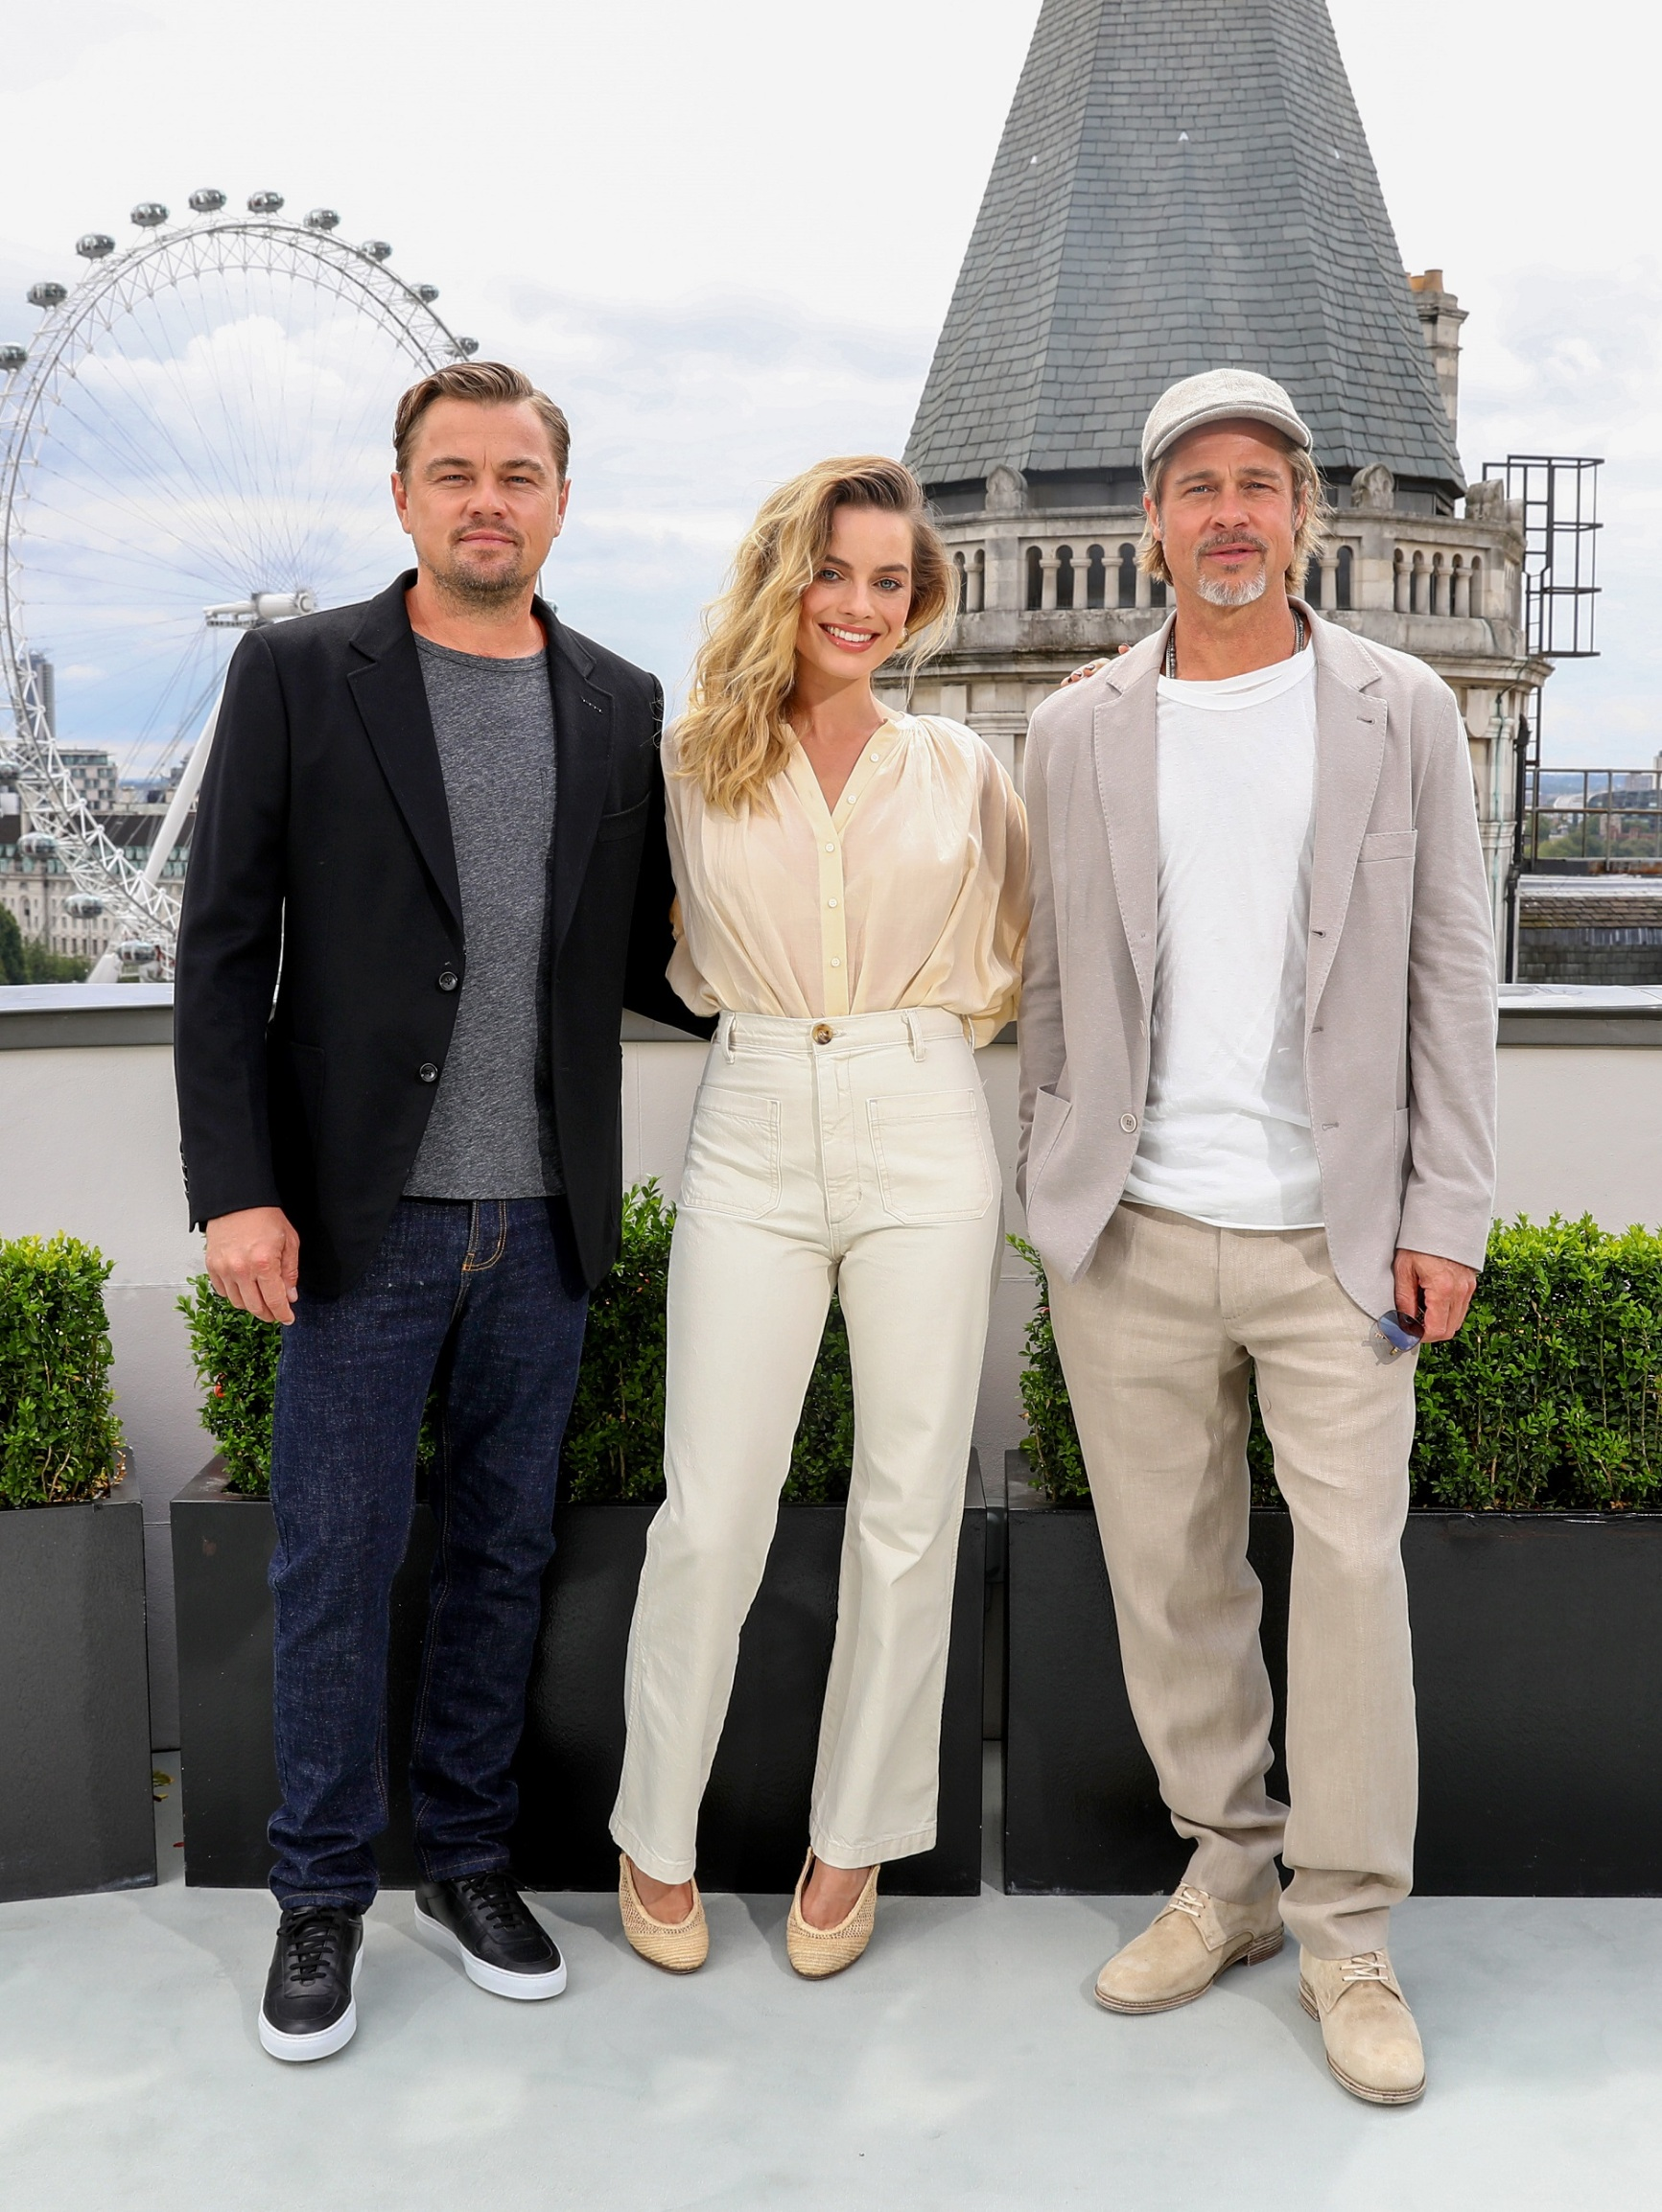 LONDON, ENGLAND - JULY 31:  (L-R) Leonardo DiCaprio, Margot Robbie and Brad Pitt attend the Once Upon A Time…In Hollywood Photocall in London at The Corinthia Hotel on July 31, 2019 in London, England. (Photo by Tim P. Whitby/Getty Images for Sony)